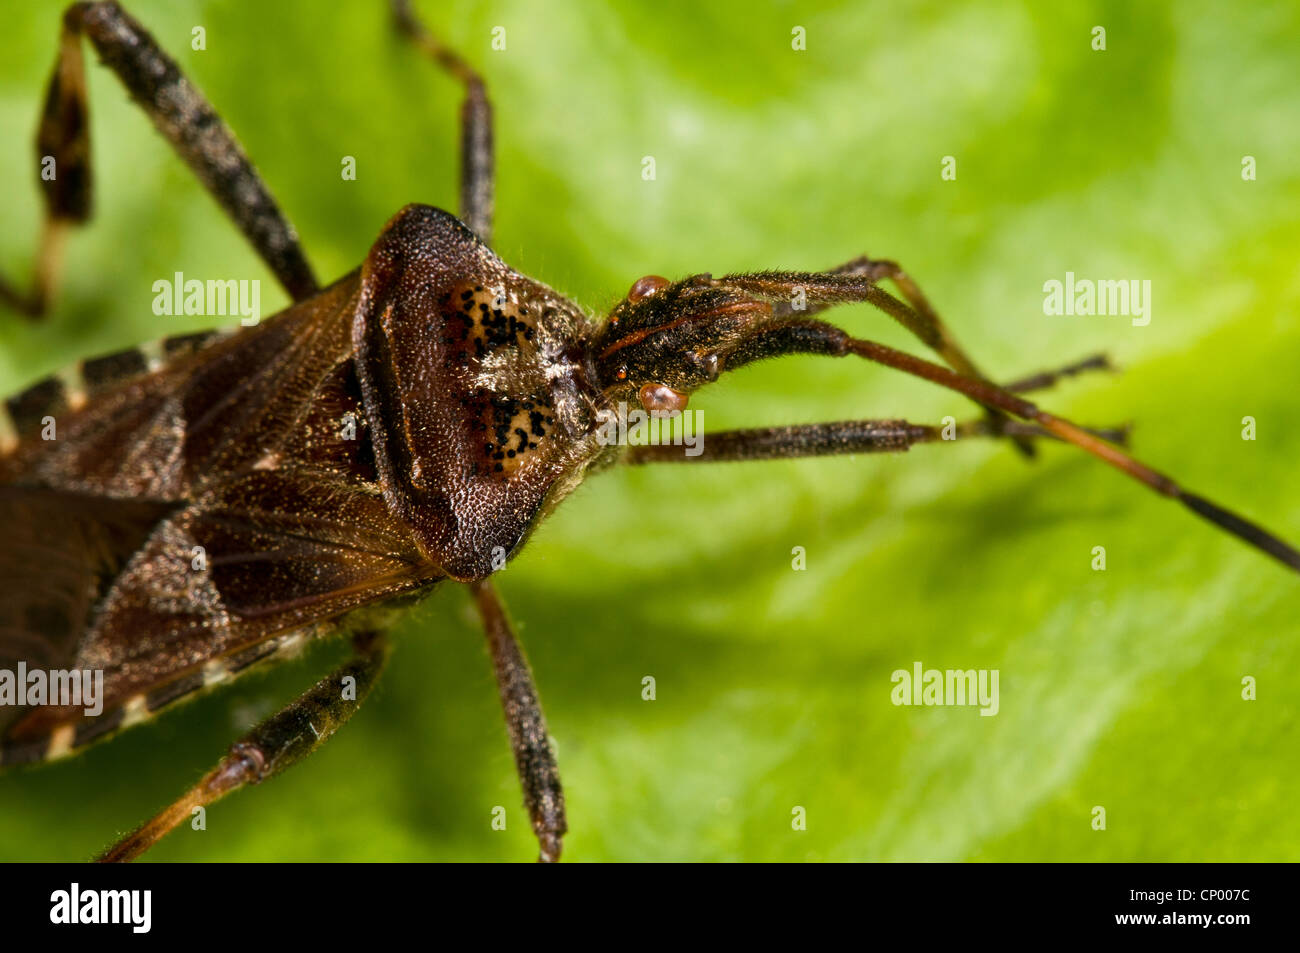 A close up on the head of a western conifer seedbug (Leptoglossus occidentalis) resting on a leaf and cleaning its - Stock Image